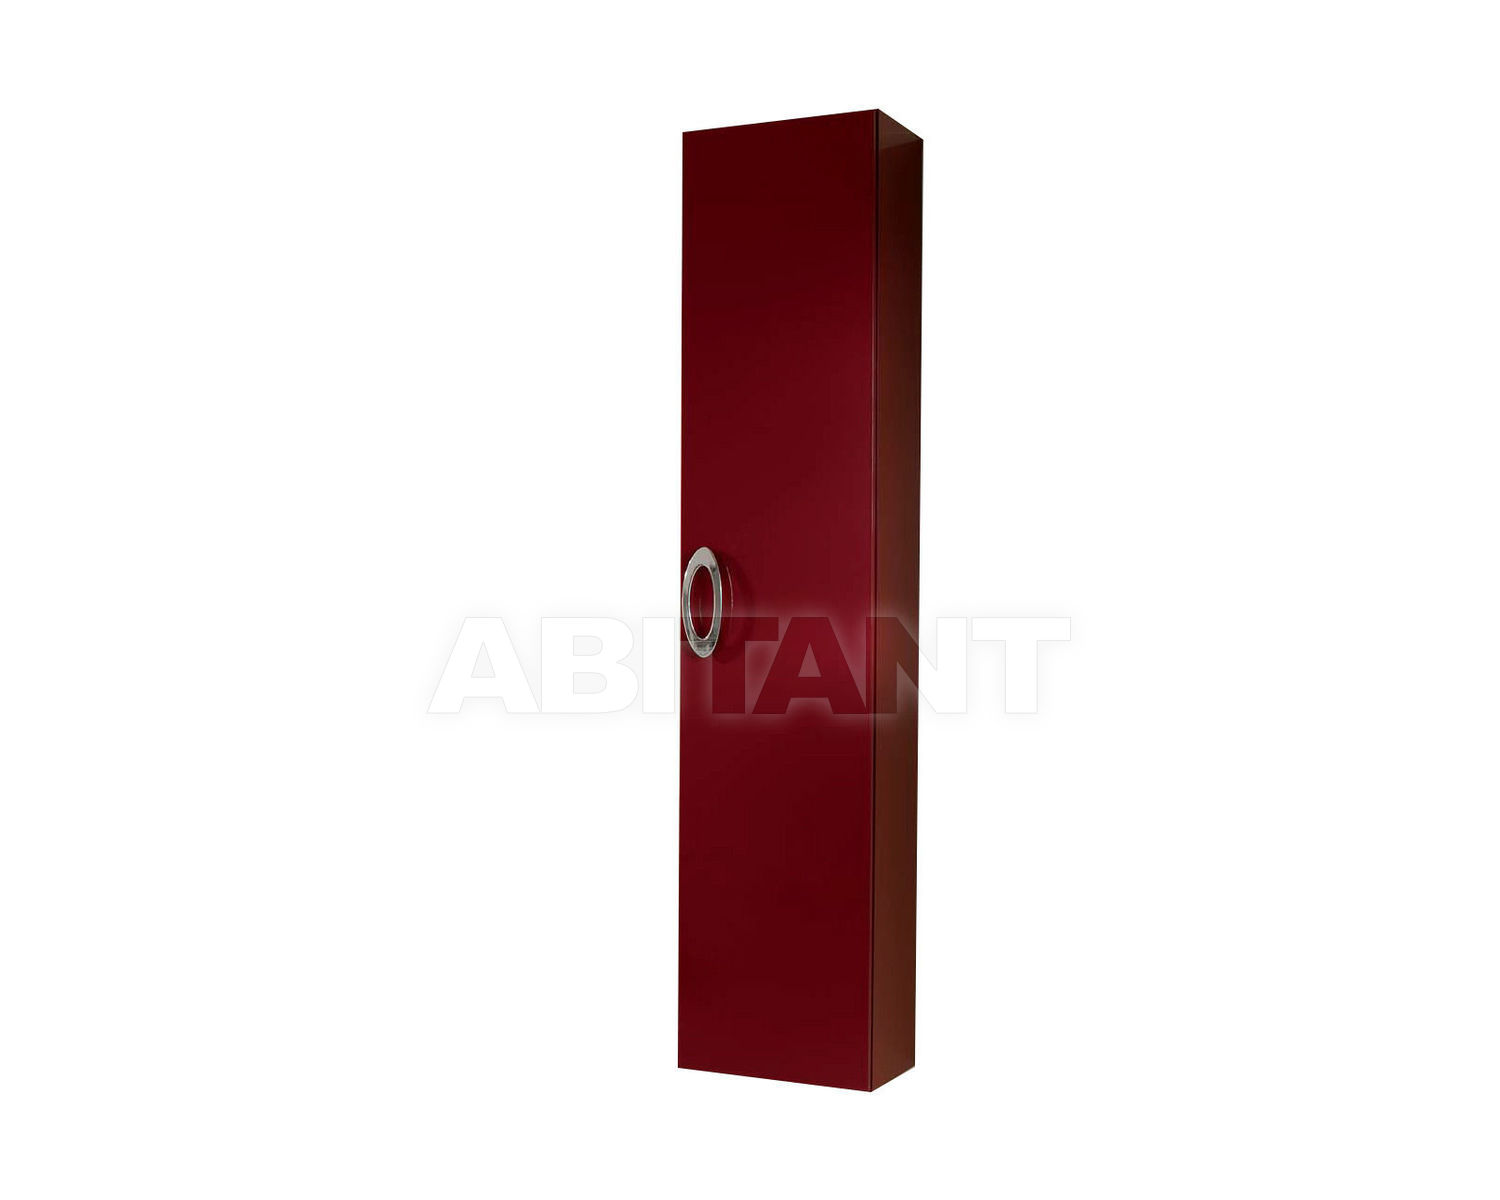 Купить Шкаф для ванной комнаты Ciciriello Lampadari s.r.l. Bathrooms Collection colonna MARLENE dx rosso